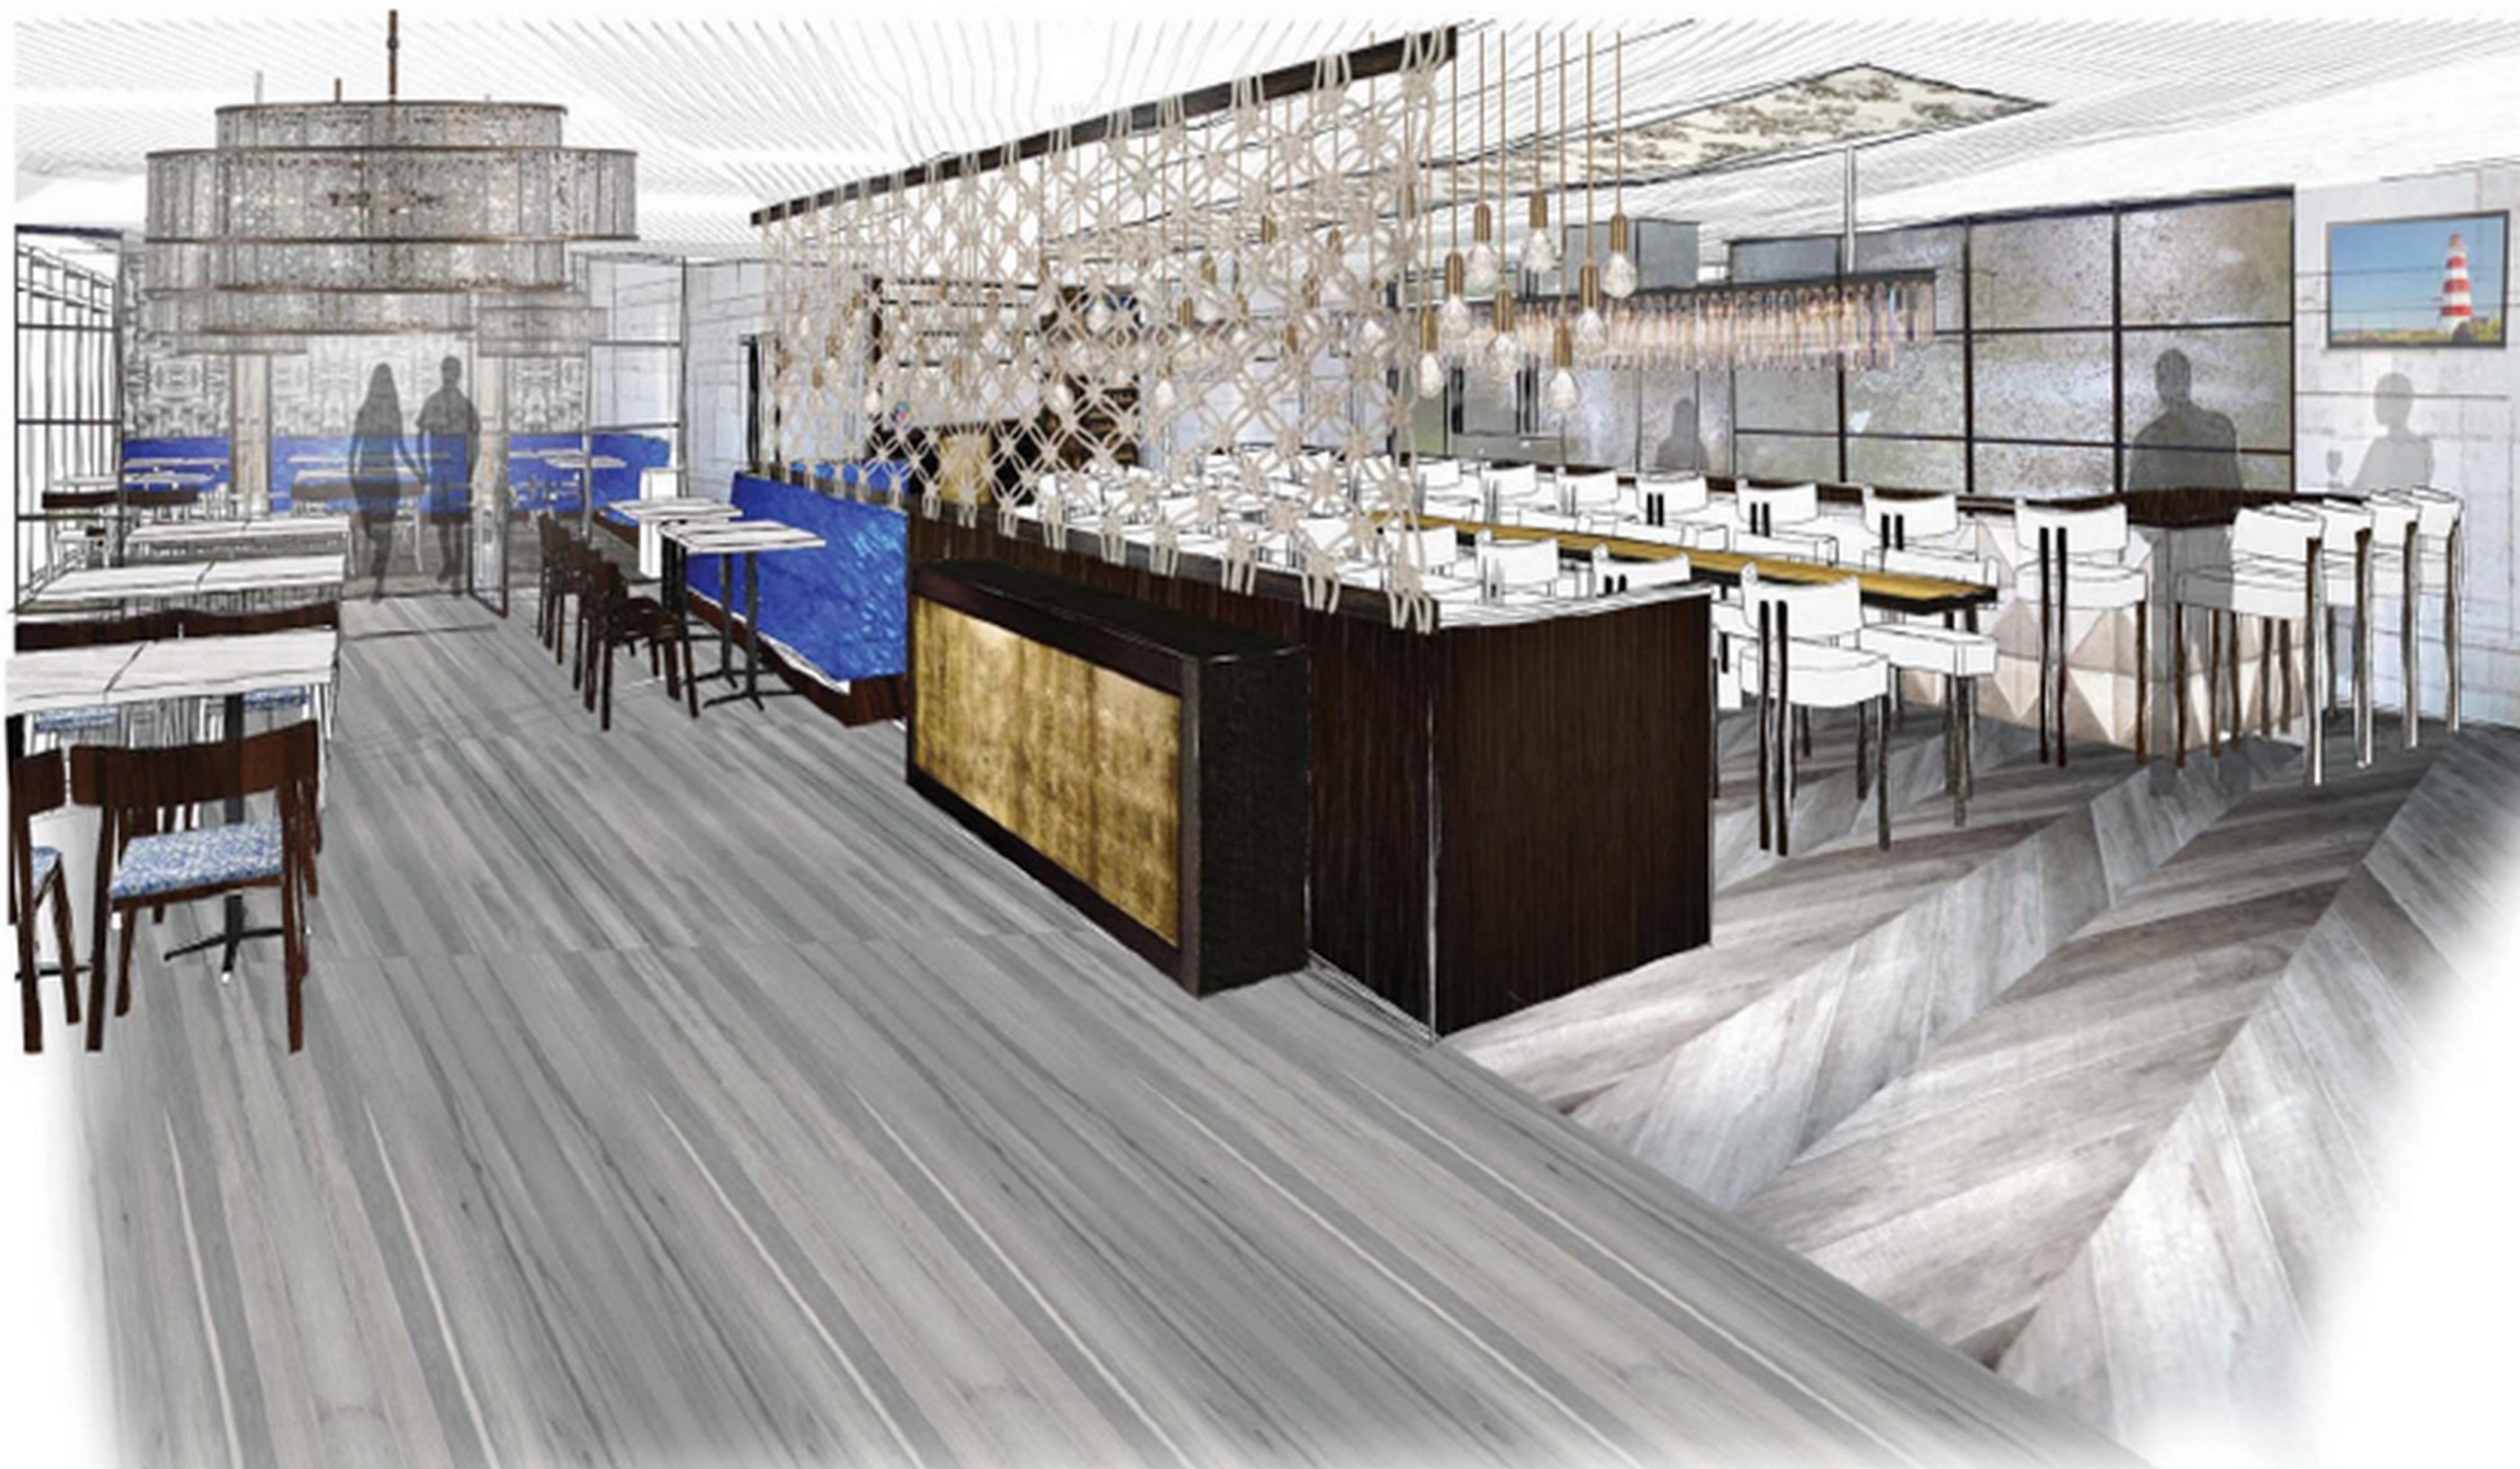 An architect's rendering of the All Set Restaurant & Bar dining room. (Graphic: All Set Restaurant & Bar)